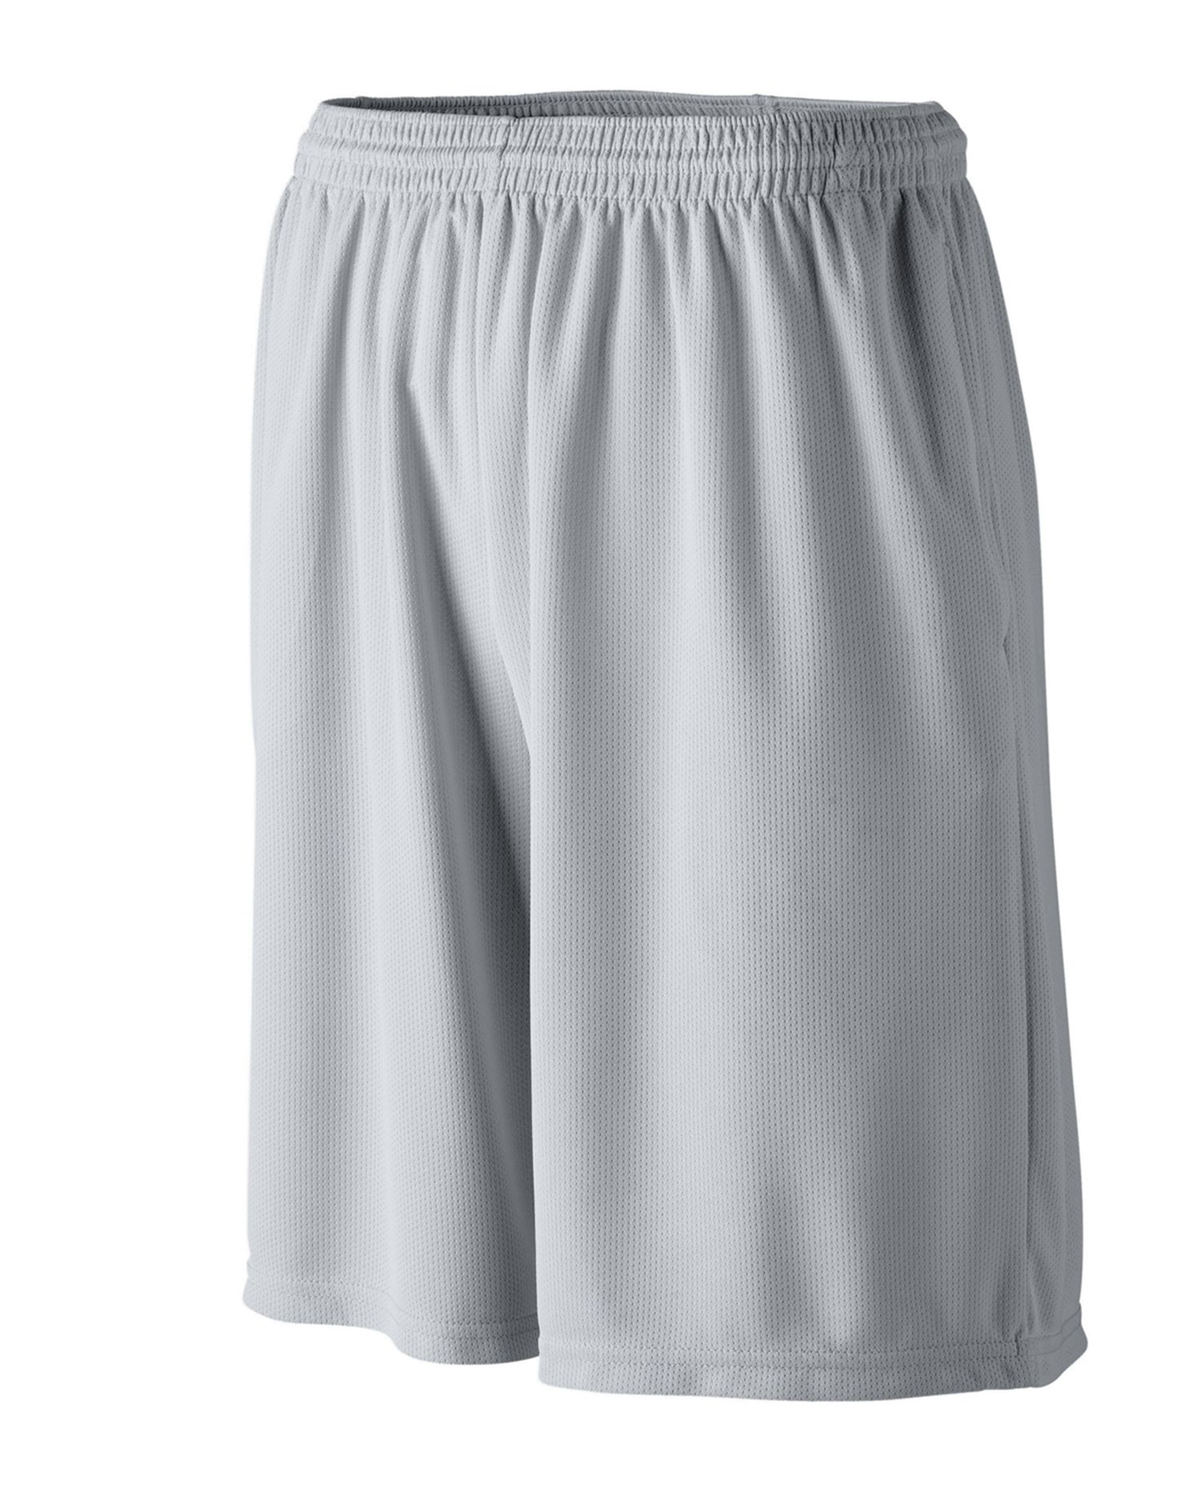 Longer Length Wicking Short with Pockets